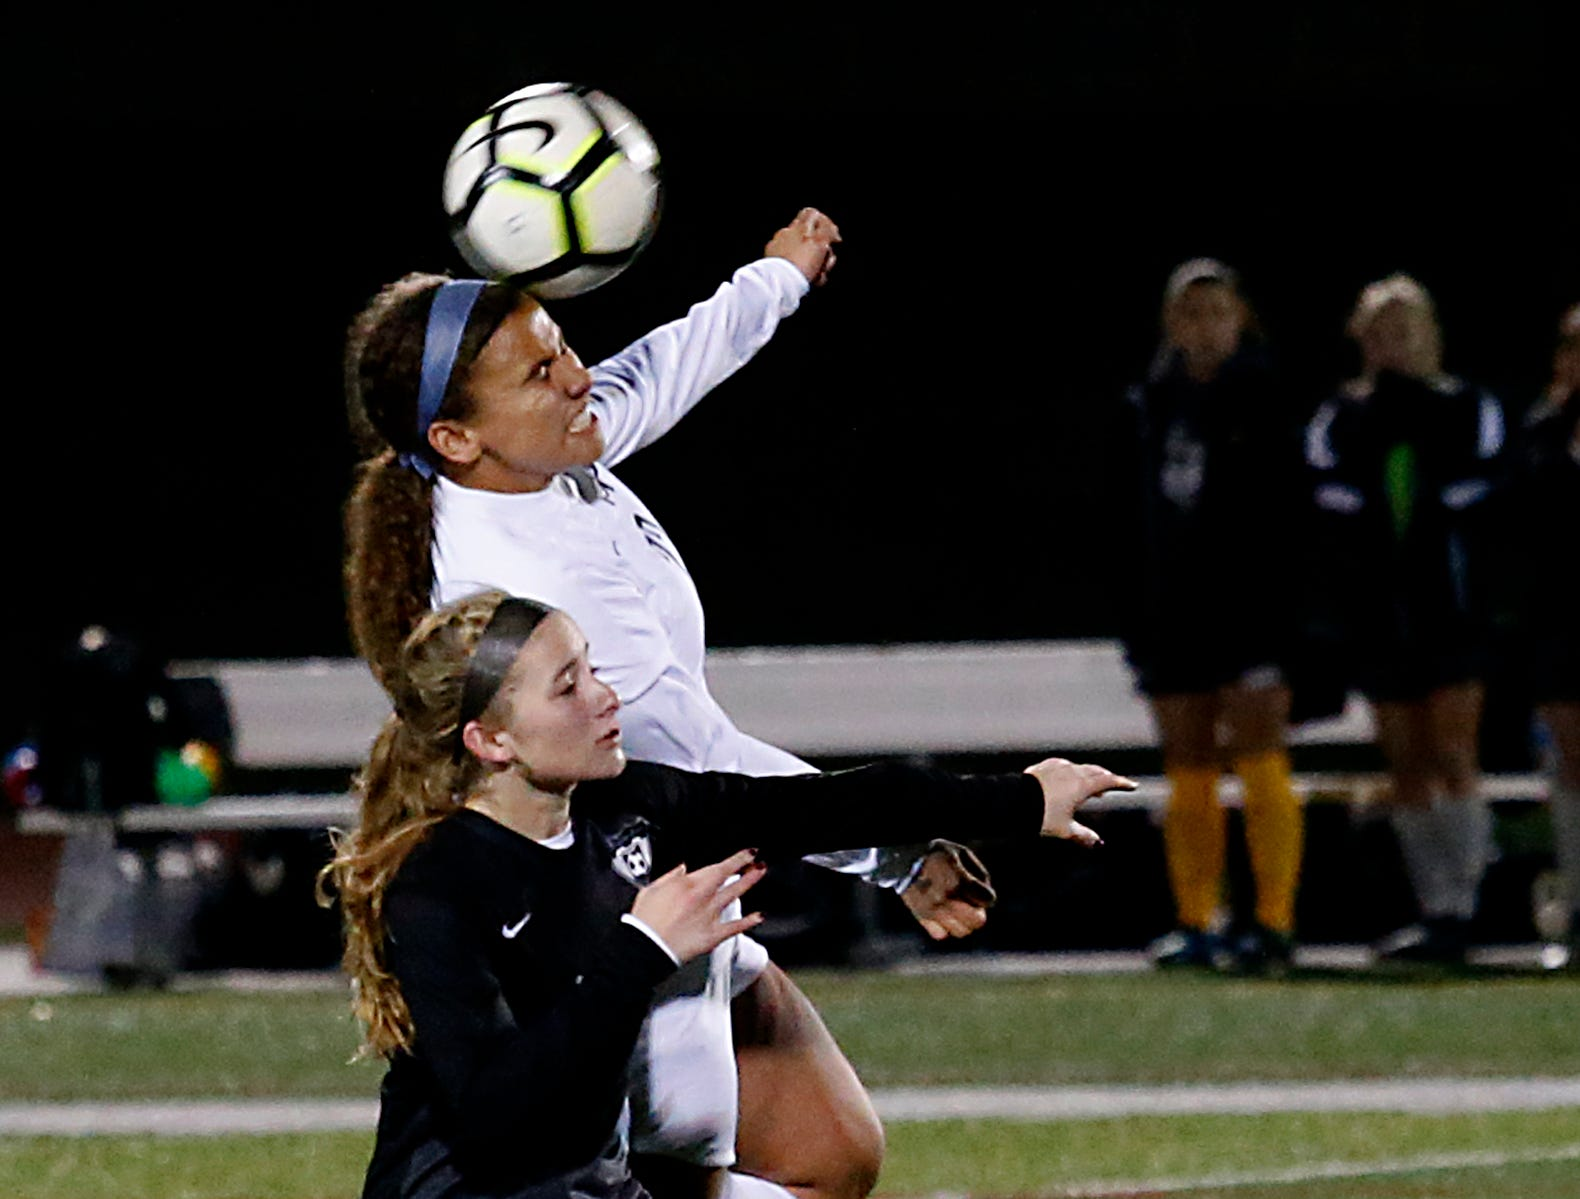 Mount Notre Dame defender Lexi Watson heads the ball away from Lakota East forward Sophie Amaya during their Division I Southwest district final soccer game at Walnut Hills in Cincinnati Saturday, Oct. 27, 2018.